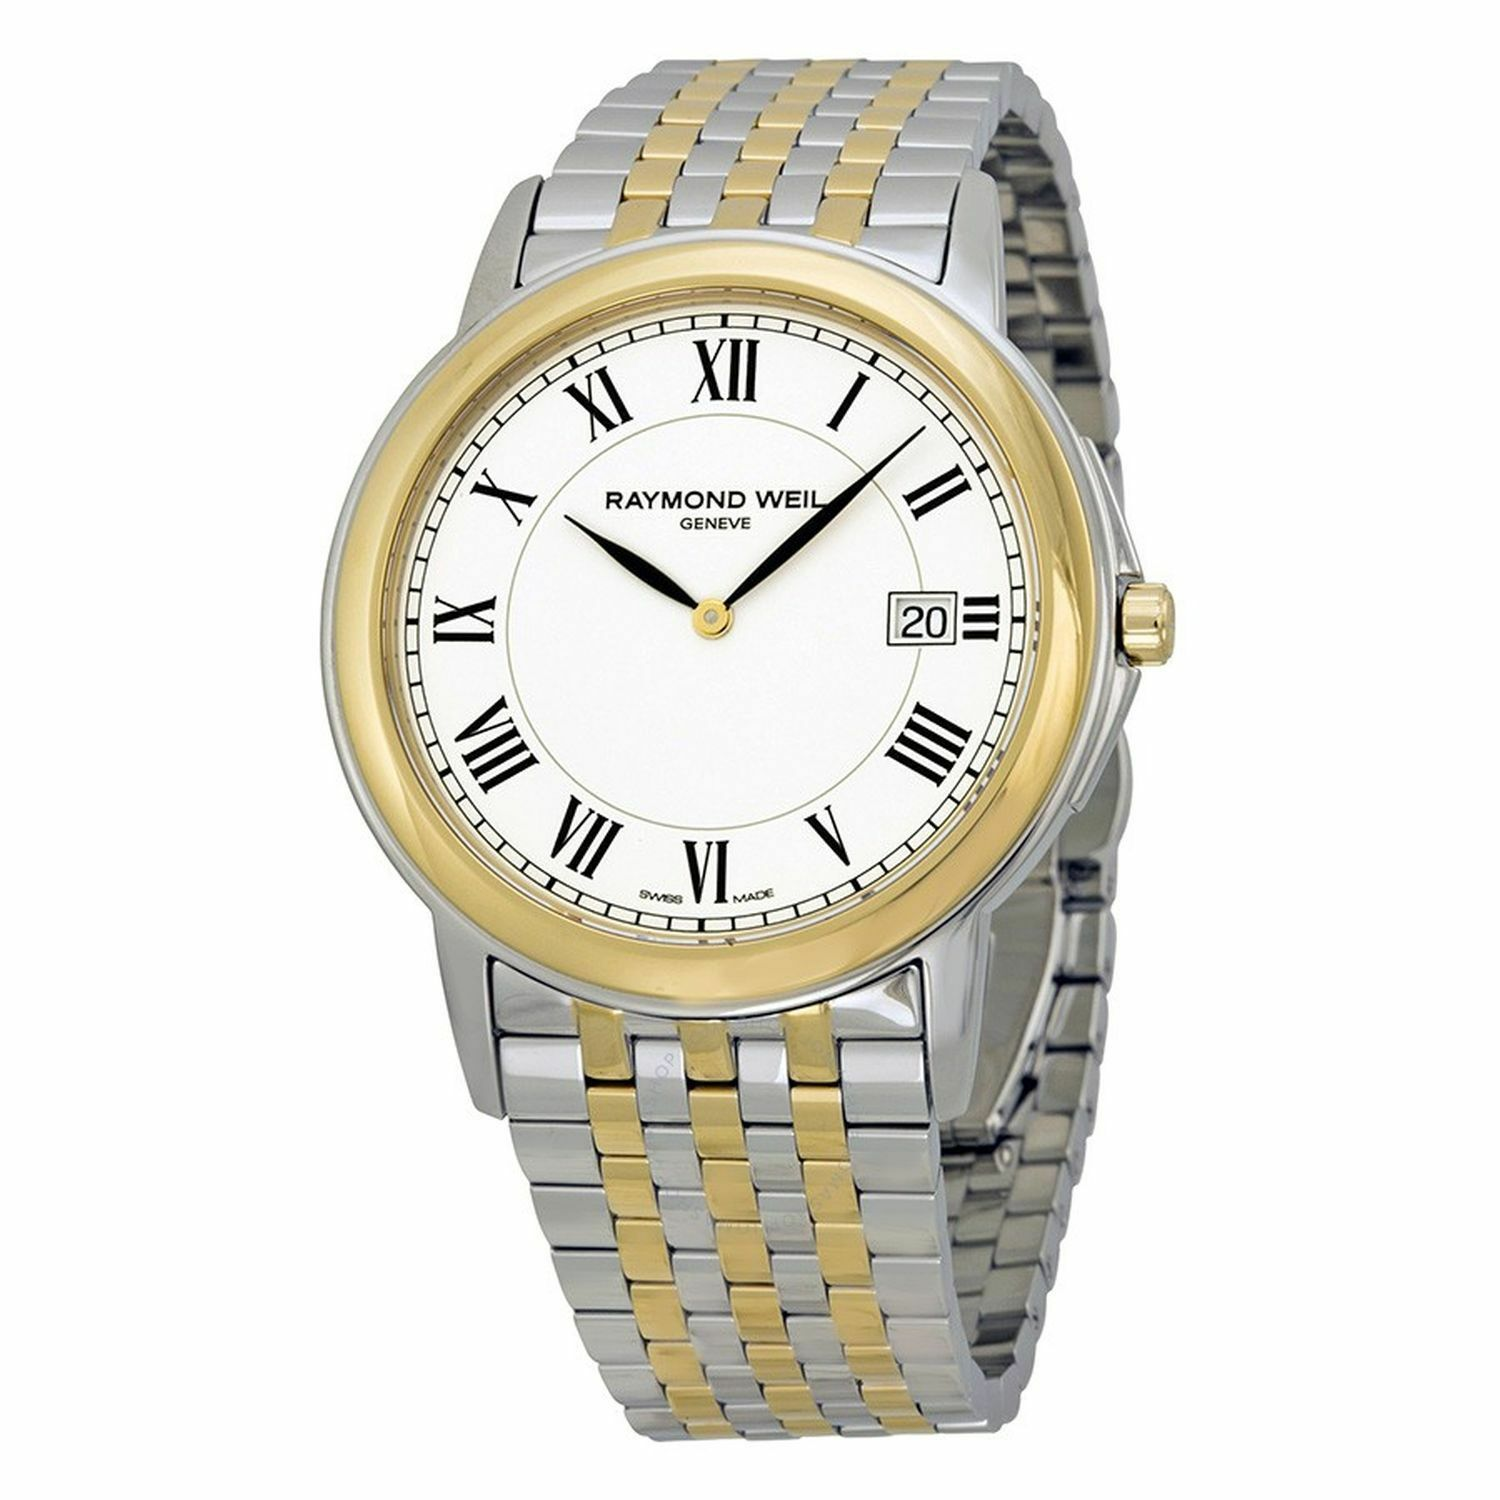 00300 Two Dial Raymond Tradition 5466 White Watch Weil Stp Tone Mens b7Ygm6yvIf